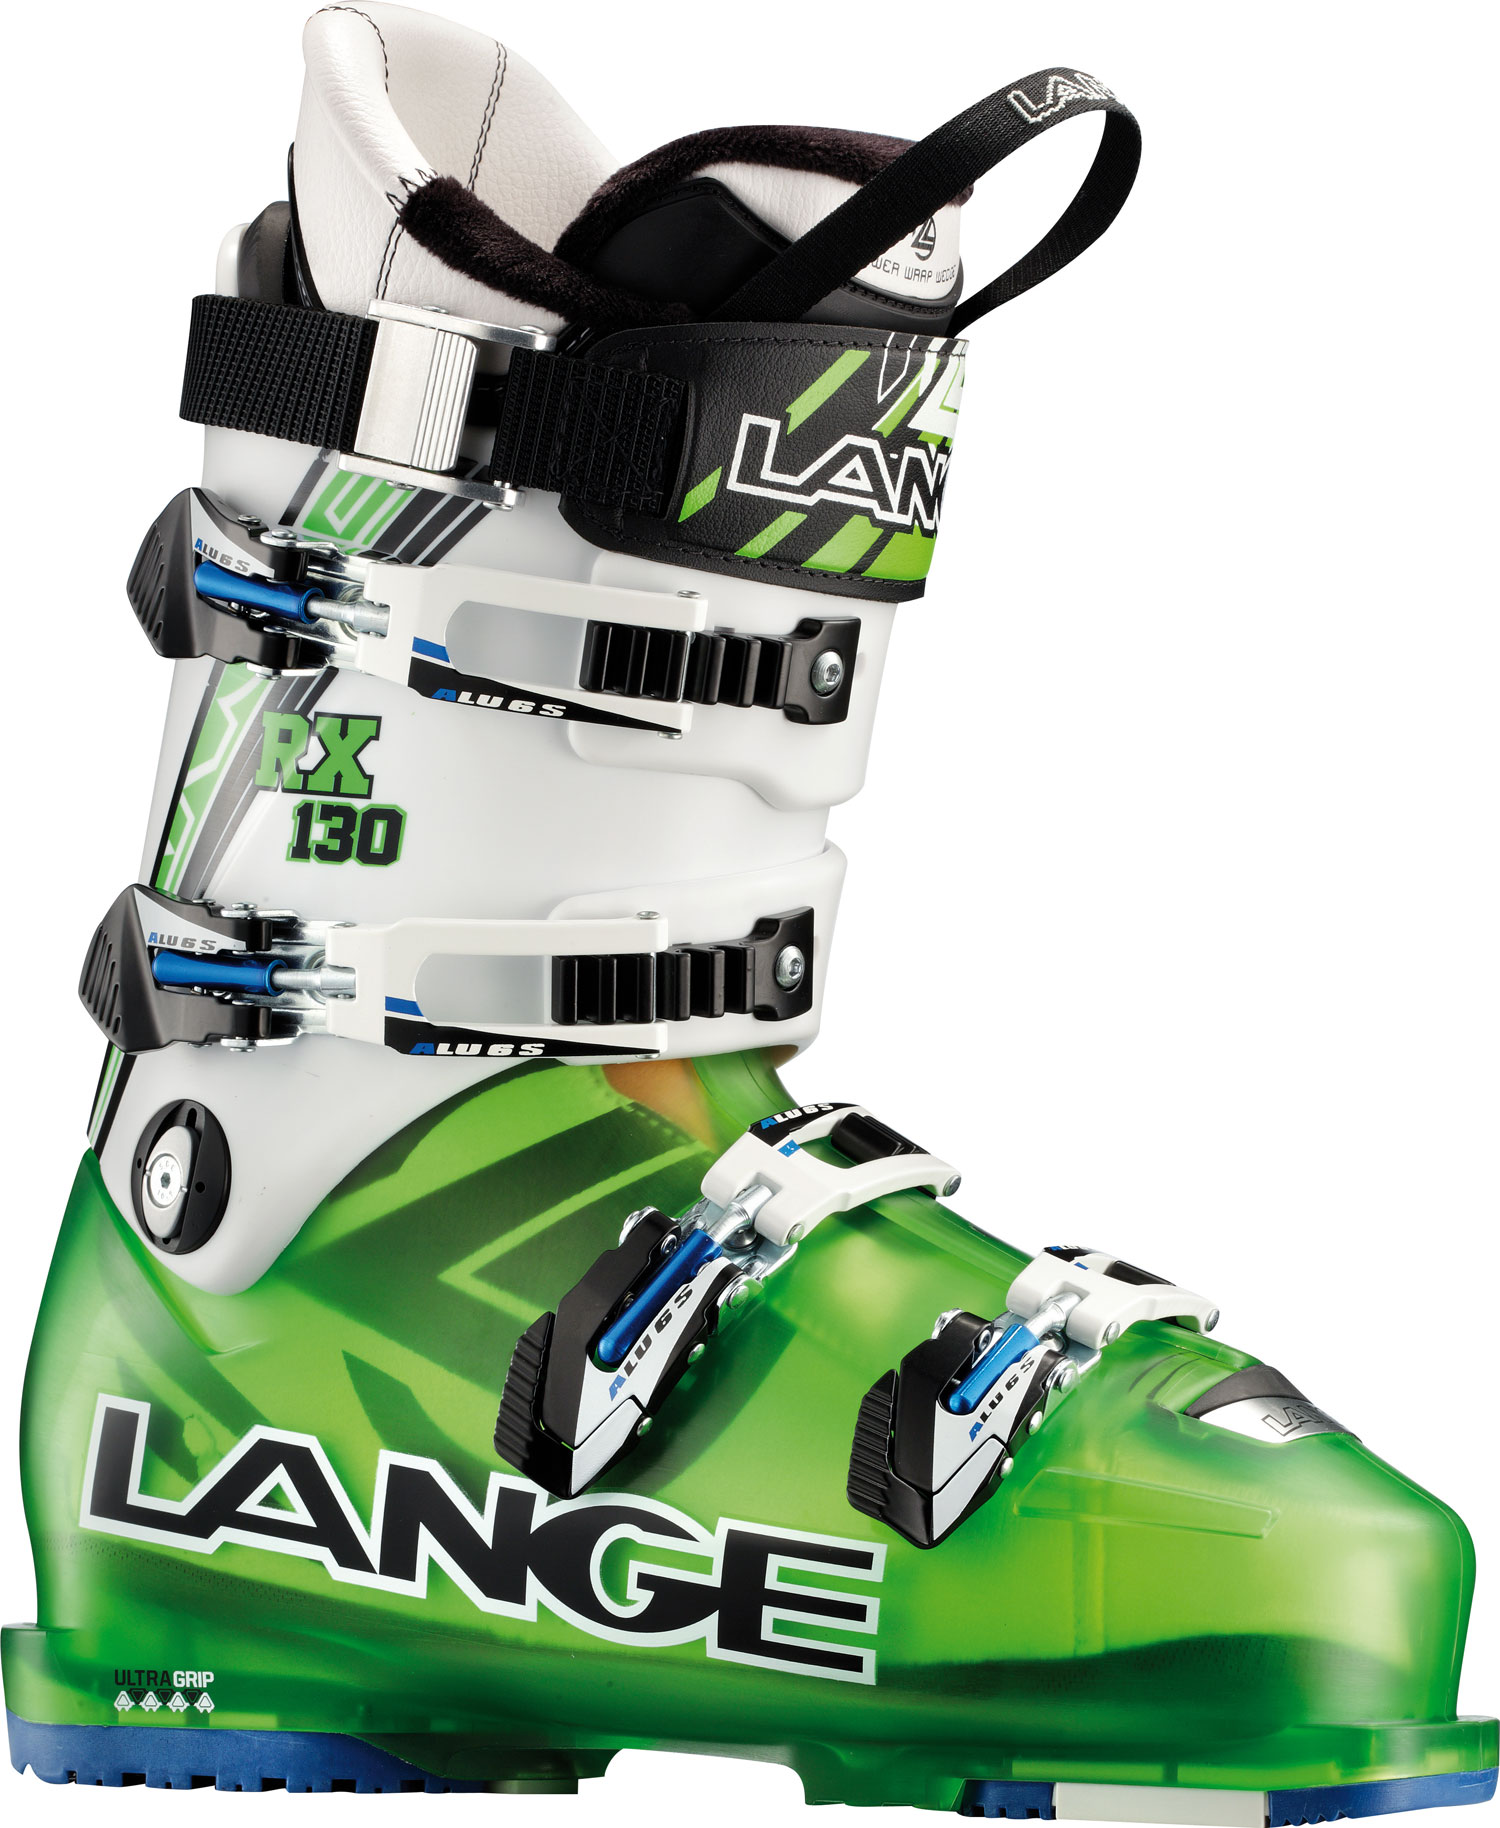 "Ski RX are award-winning, high-performance all-mountain boots based on the acclaimed RS shell. Lange's effective performance and fit solutions: Control Fit, mono-injected shells and modern, efficient stance angles deliver precise fit, enhanced comfort and powerful big-mountain performance. Ultra-Grip replaceable soles provide increased traction and durability for hiking ridgelines and walking to the tram. Featuring ""Choose Your Width"" options in key models, RX boots simply fit more foot shapes better.Key Features of the Lange RX 130 Ski Boots: Last Width 100mm Flex Index 130 Liner Control Fit Canting +/- 1,5 degree Power Strap Camlock 40mm Shell Material Polyether Cuff Material Polyurethane Soles Ultra Grip - $454.95"